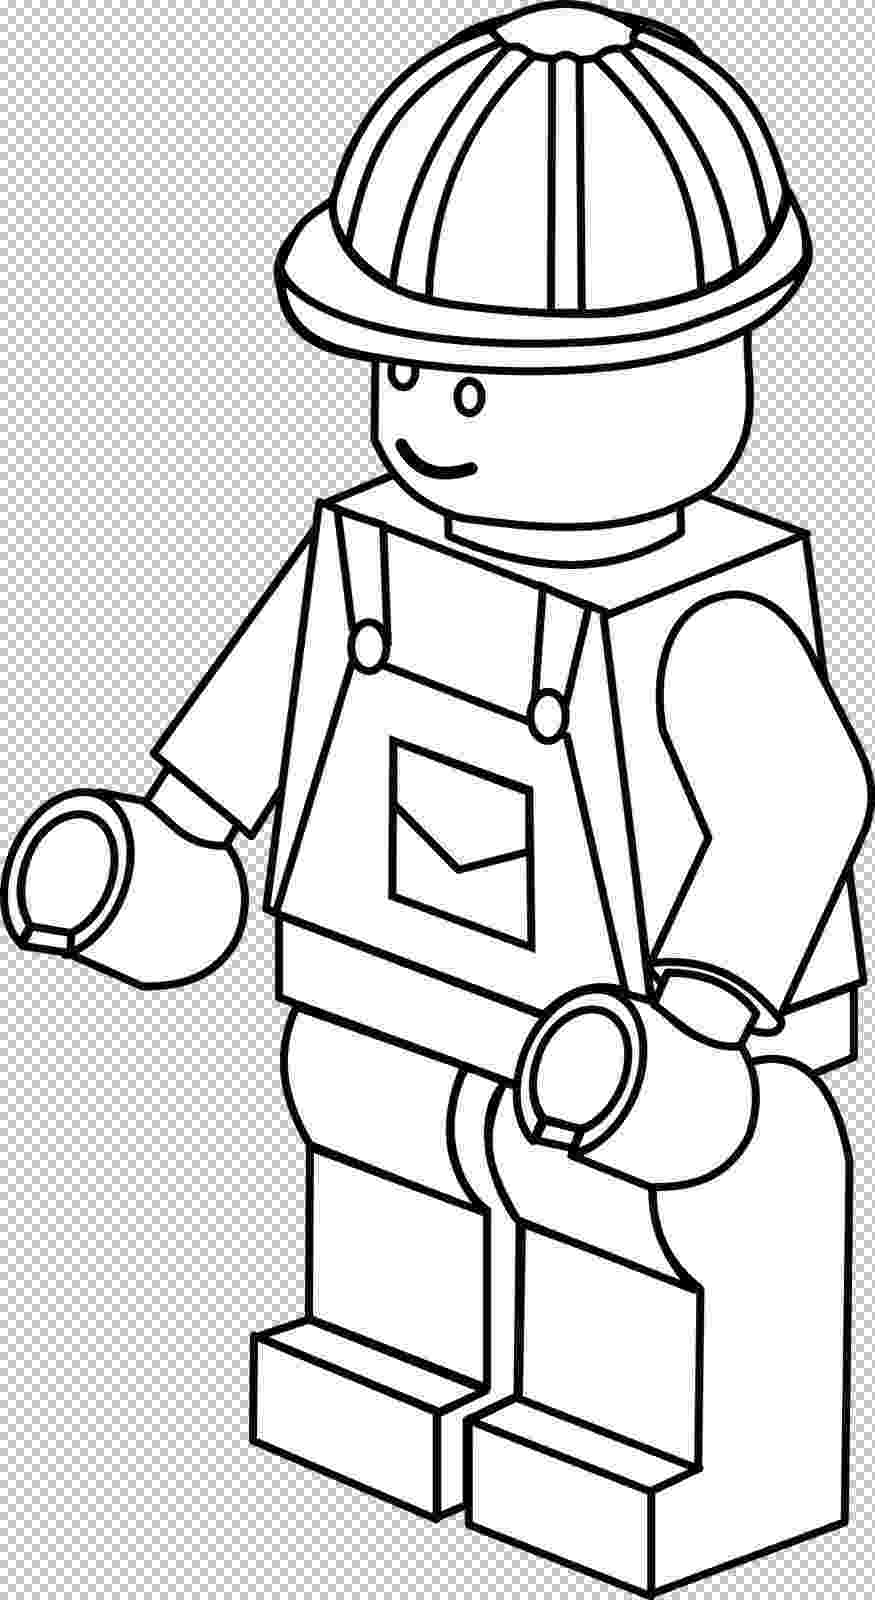 coloring page lego lego coloring pages best coloring pages for kids lego coloring page